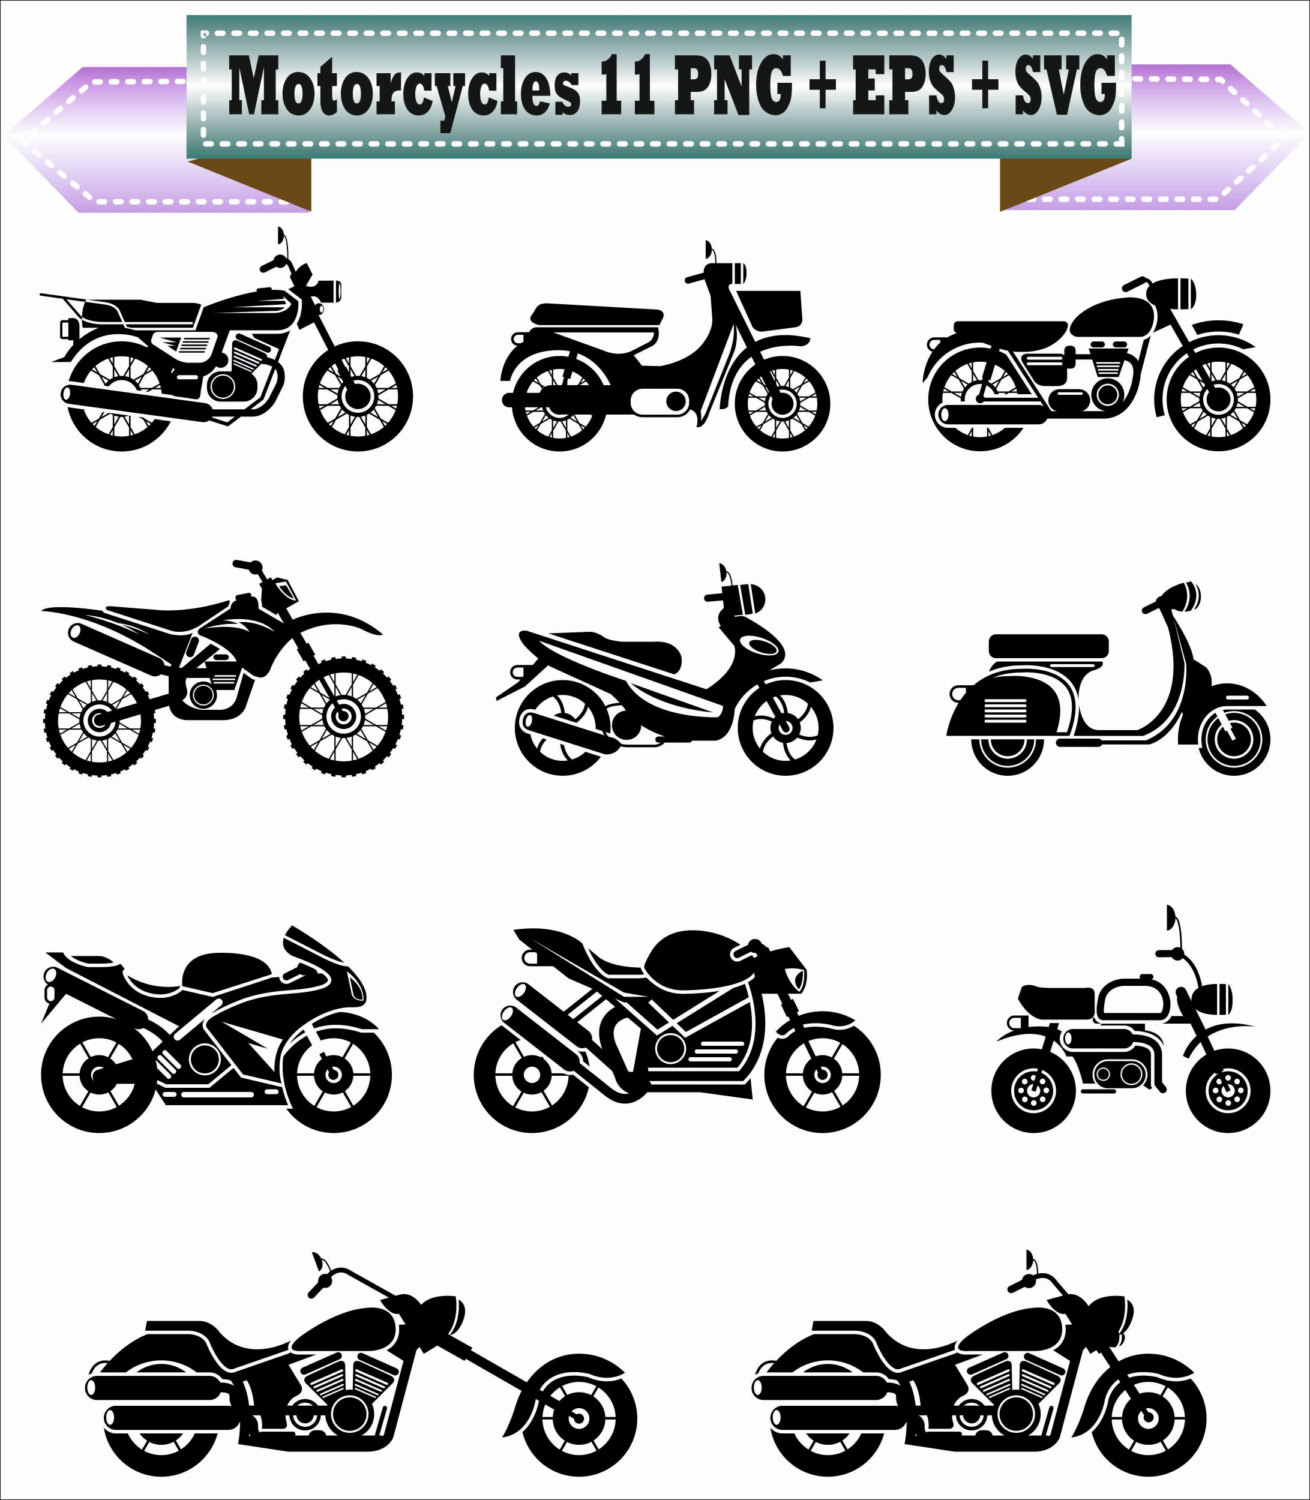 Harley Davidson clipart motorcycle chopper Bike Silhouette Supplies Bike Clip